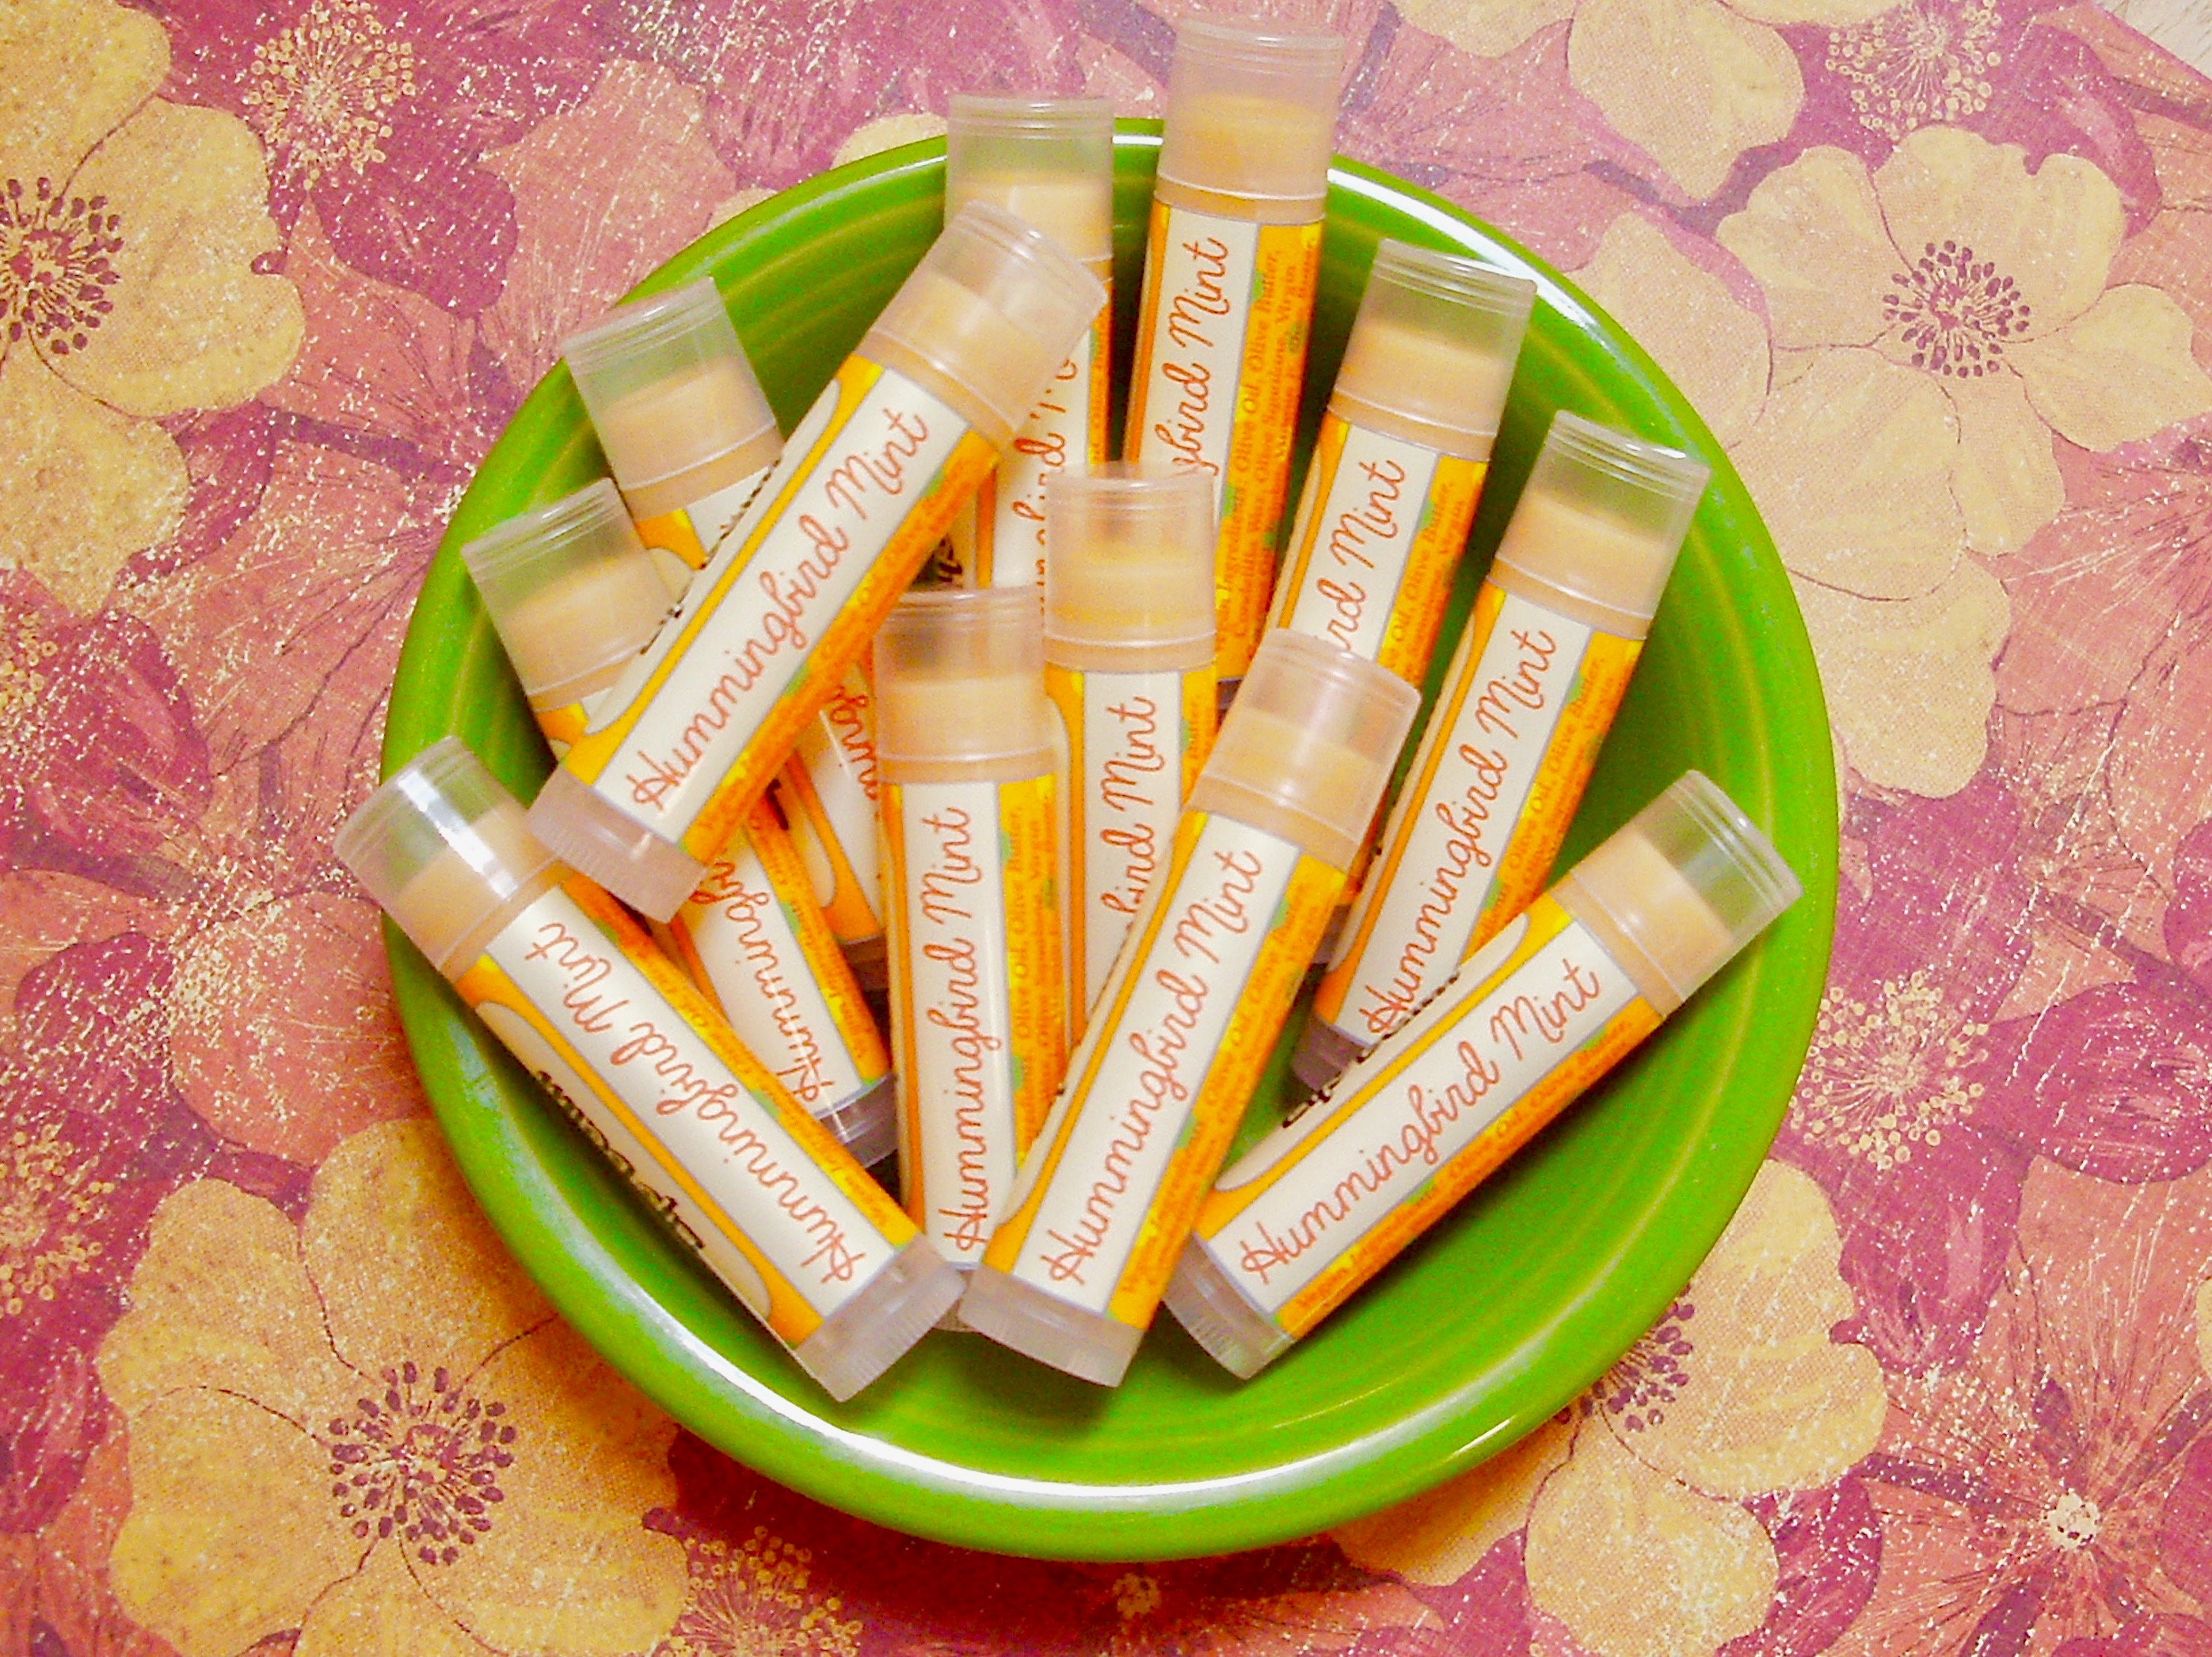 Hummingbird,Mint,Epic,Vegan,Lip,Balm,-,Limited,Edition,Into,the,Summer,Flavor,Bath_And_Beauty,Lip_Balm,lip_balm,lipbalm,lip_gloss,epically_epic,vegan_lip_balm,gluten_free_lip_balm,indie_lip_balm,EE_lip_balm,chapstick,into_the_summer,mango_tangerine,spearmint_lip_balm,mango_lime,vitamin e,candelilla wax,flavor,natural sweetener,virg